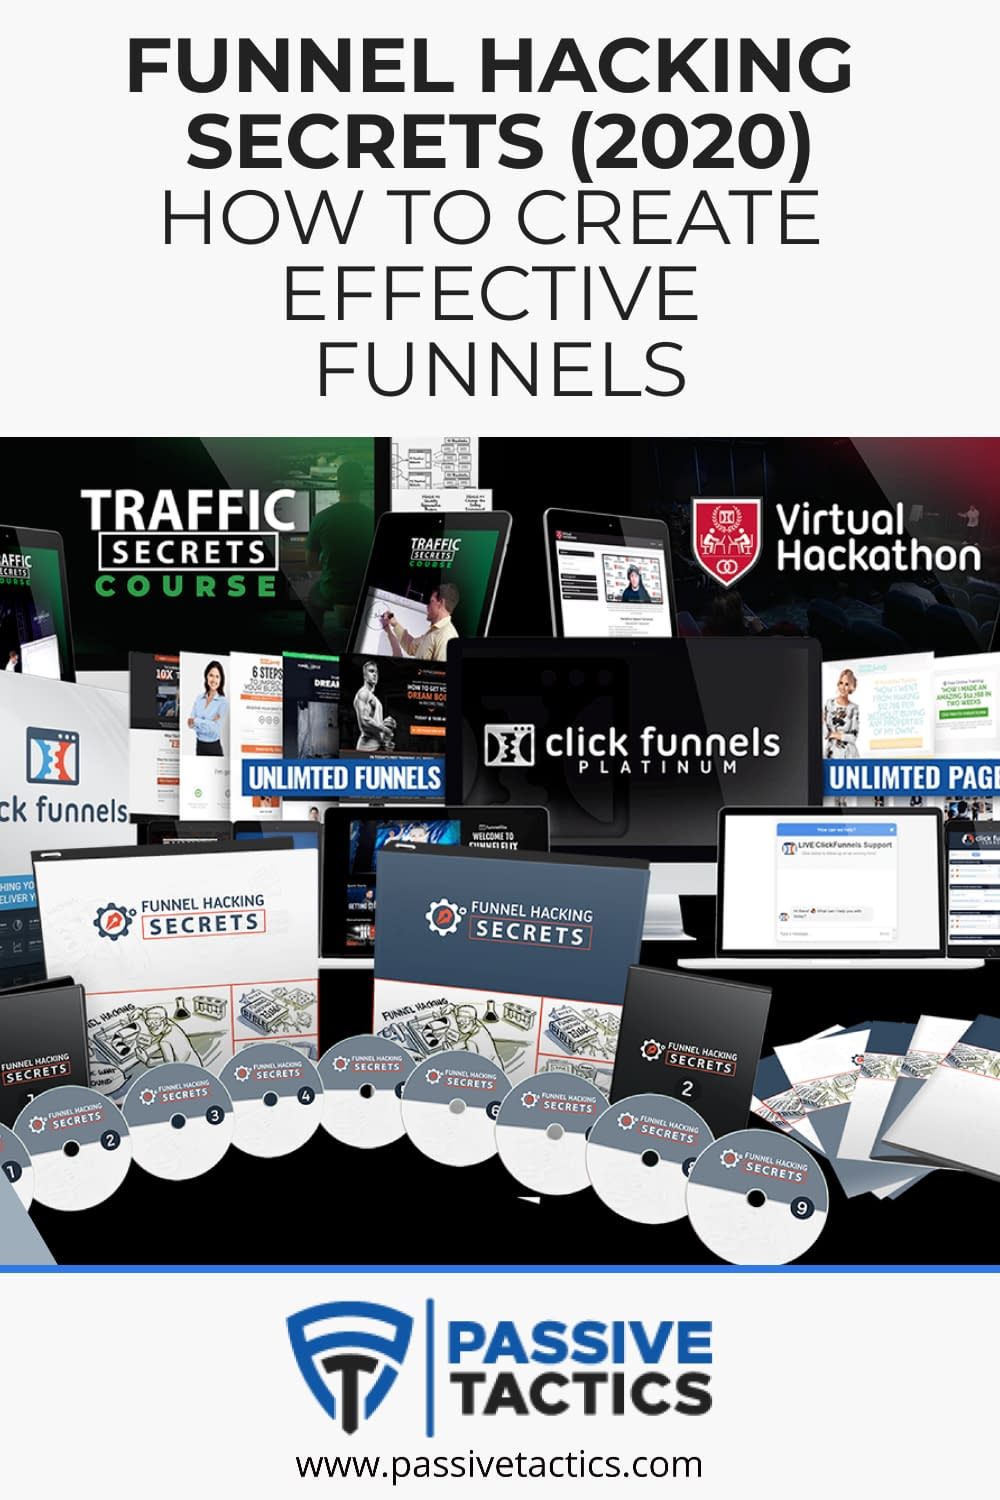 Funnel Hacking Secrets Review (2020) - Create Effective Funnels